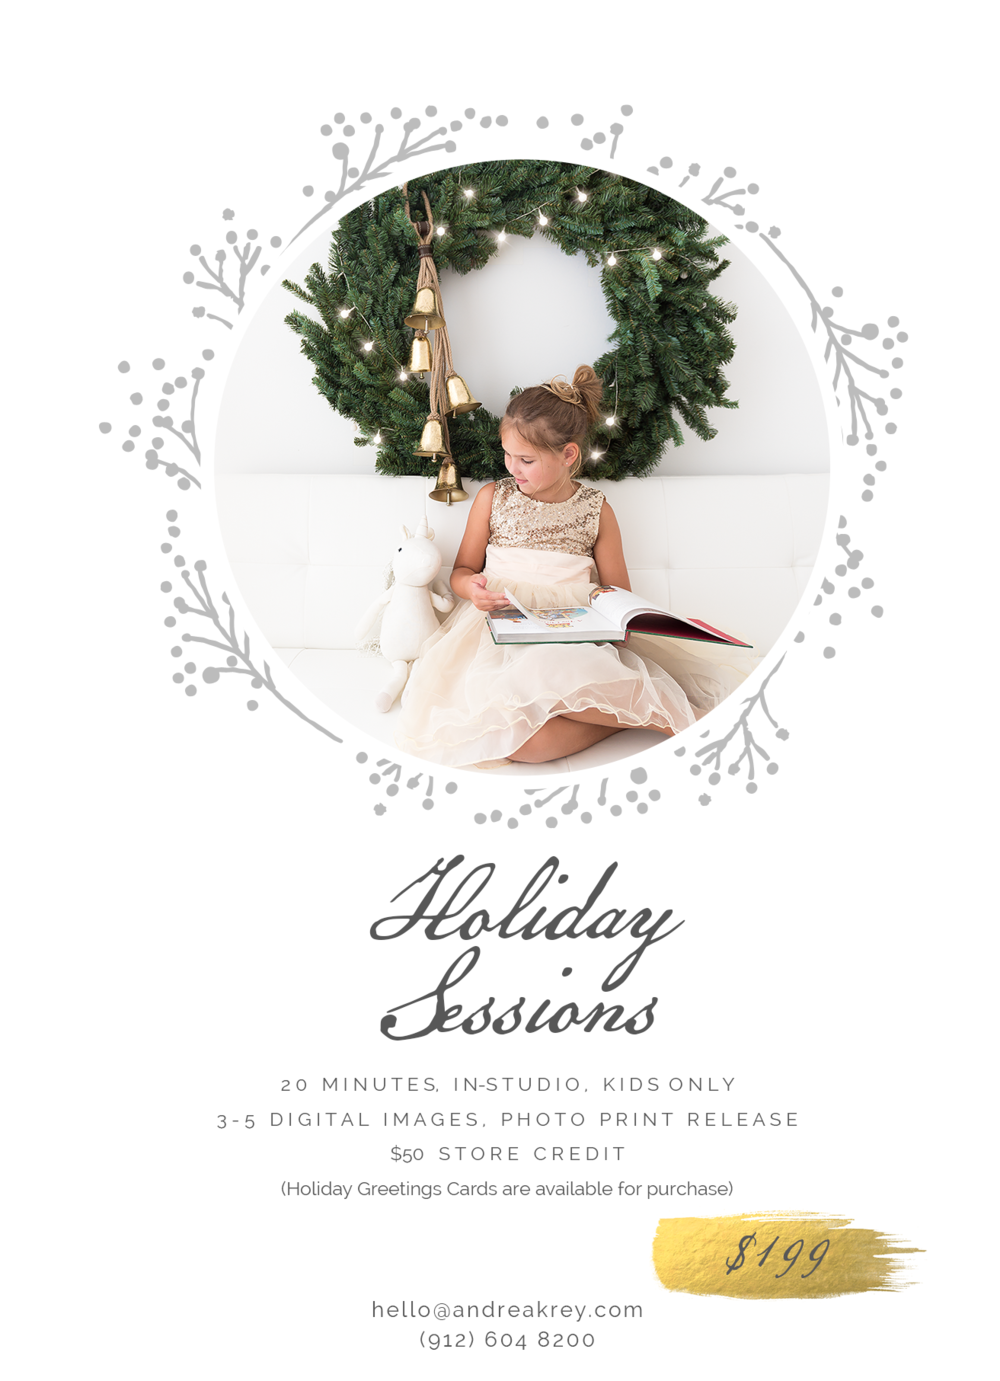 Christmas_2017_Holiday session copy.png